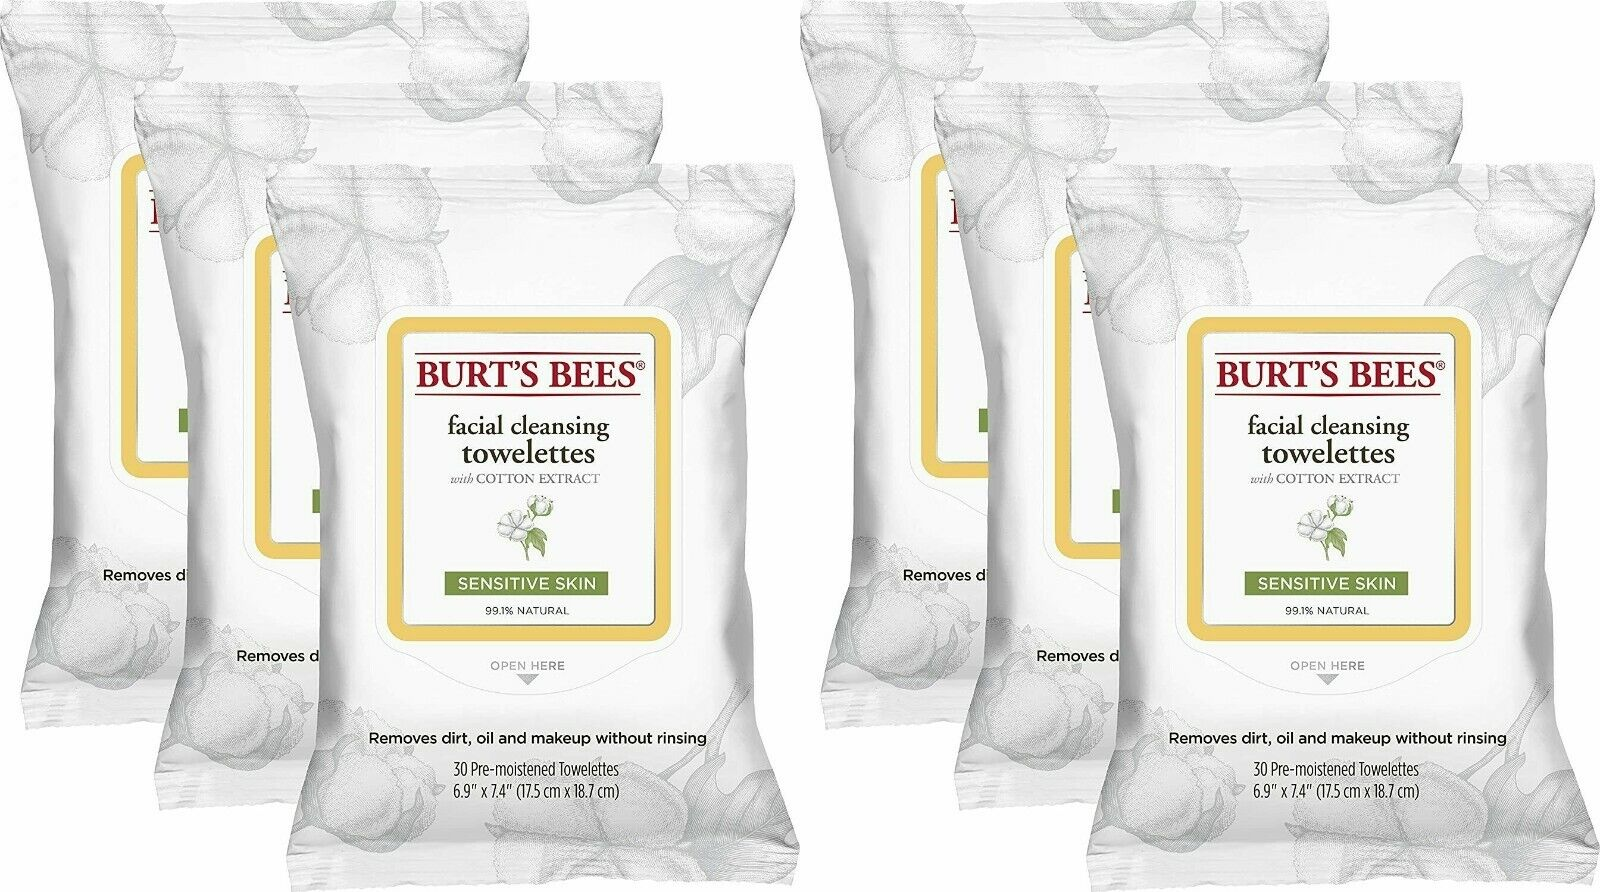 Burt's Bees Facial Wipes Towelettes Sensitive Cleansing Cotton Extract 30 Count Cleansers & Toners